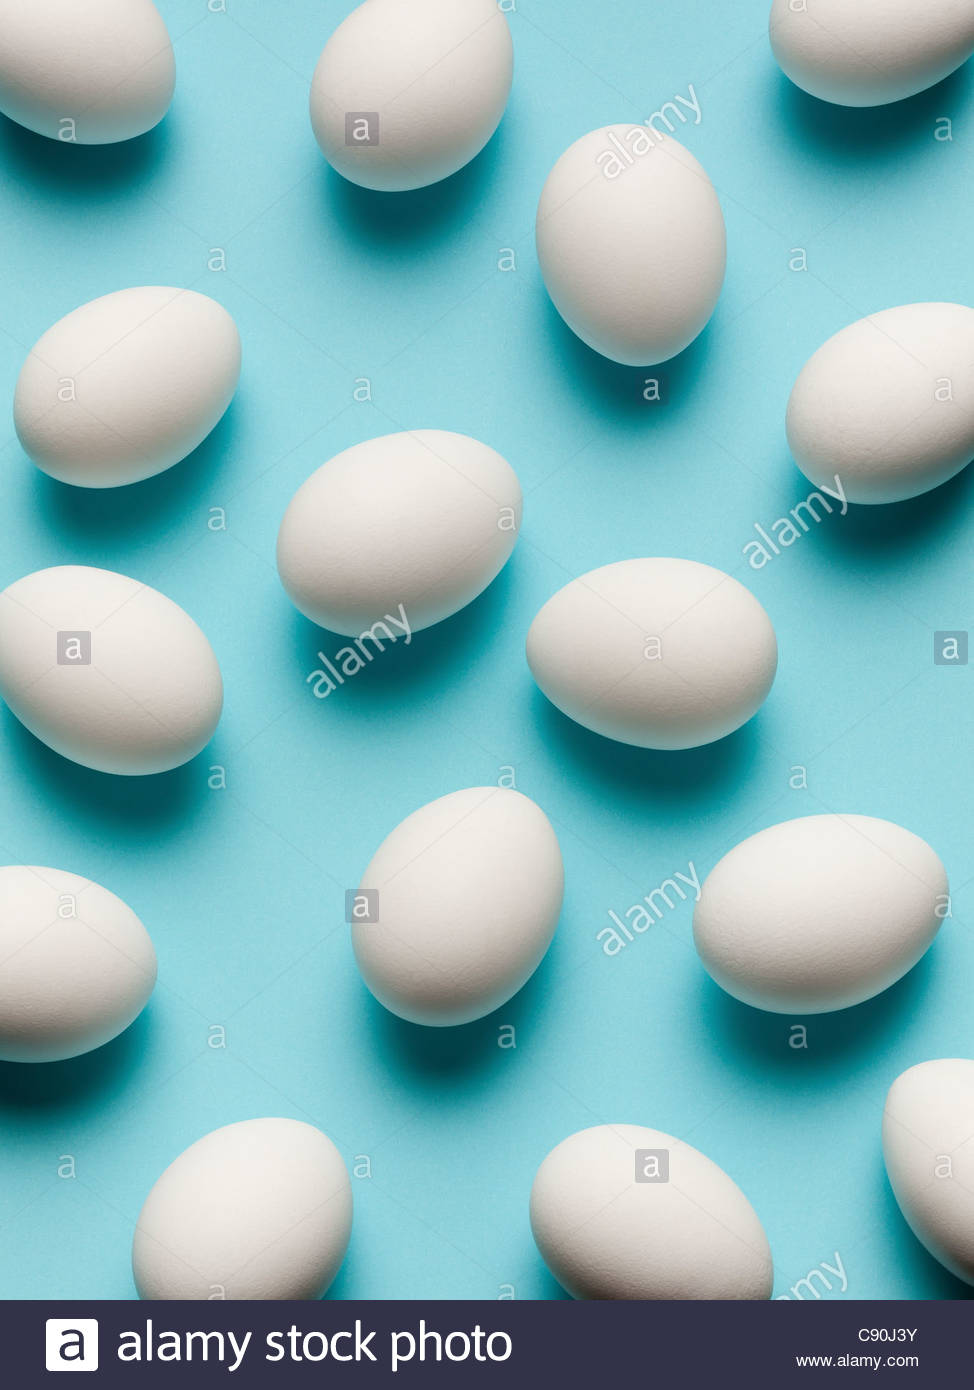 Eggs rolling on countertop - Stock Image